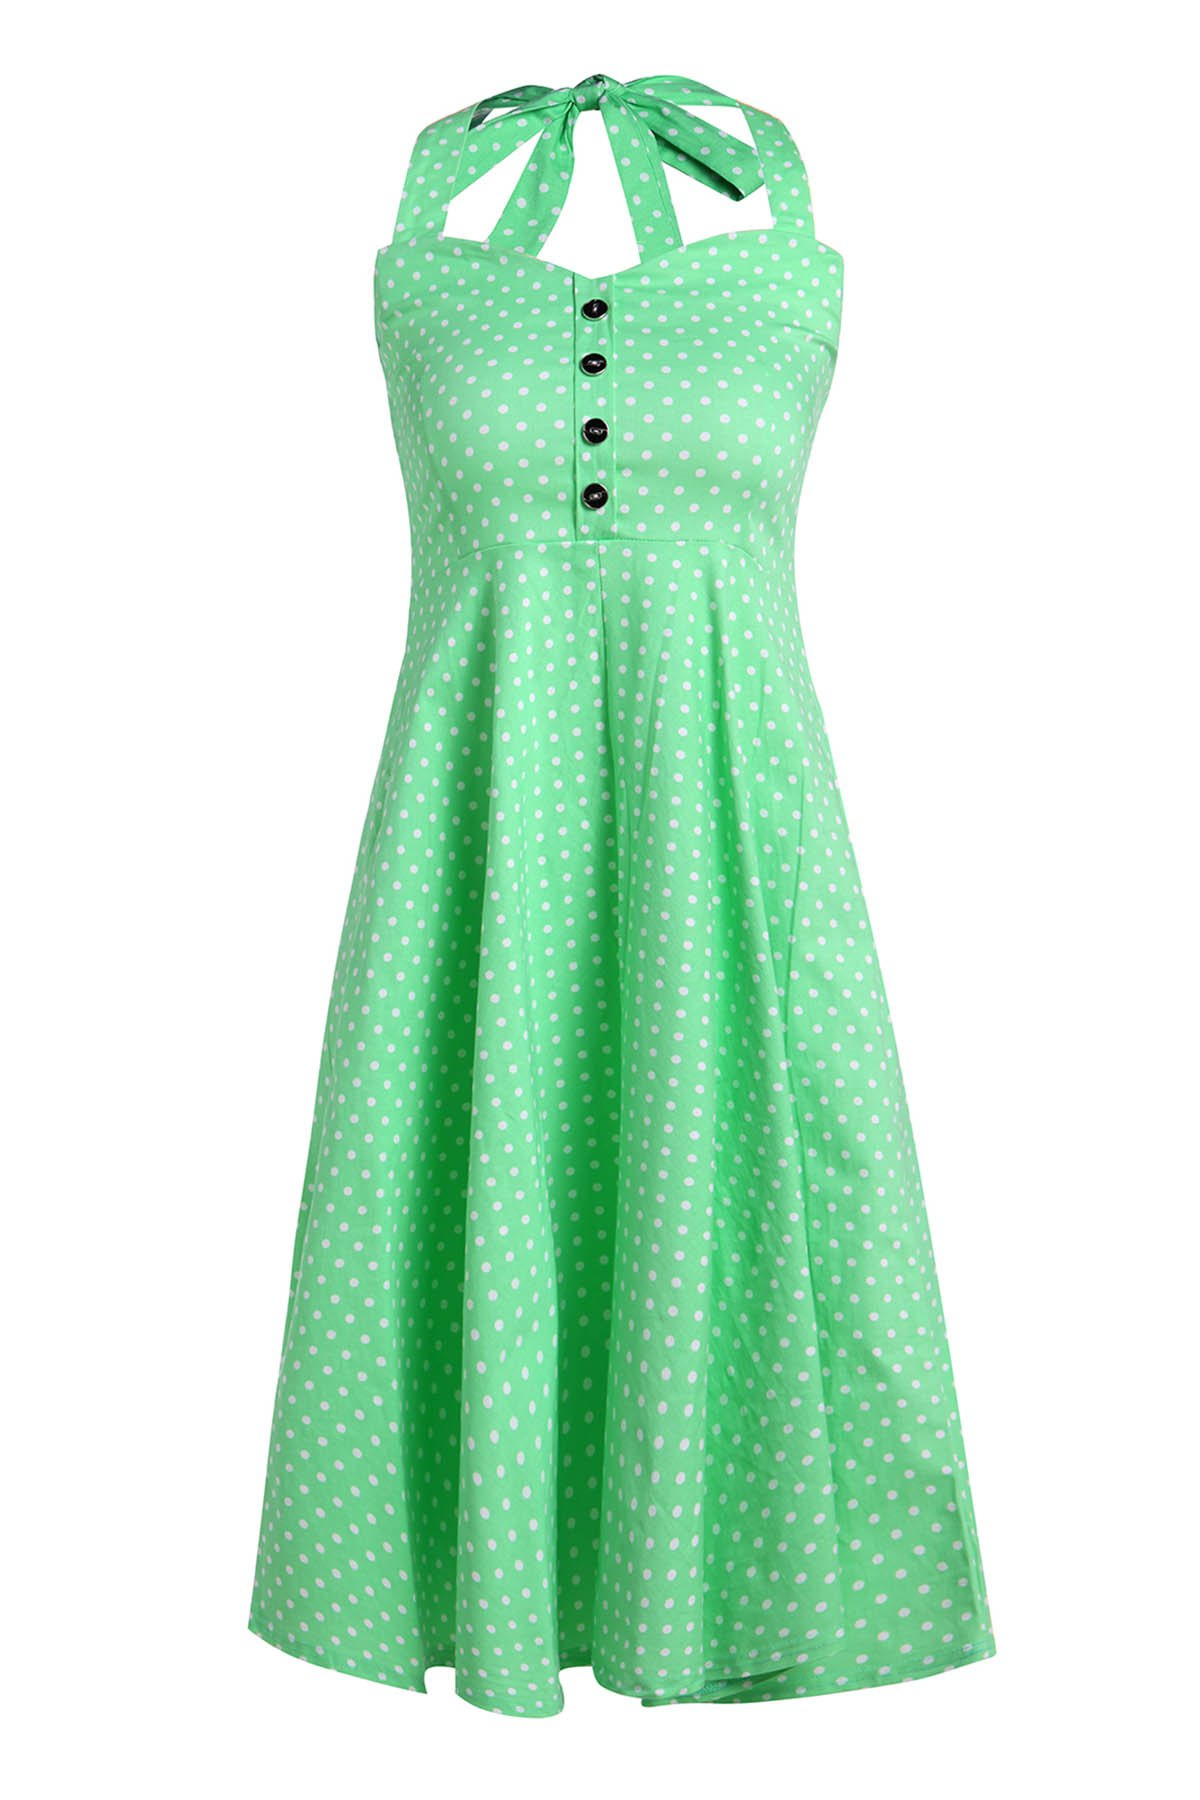 Buy Vintage Halterneck Polka Dot Button Design Women's Dress